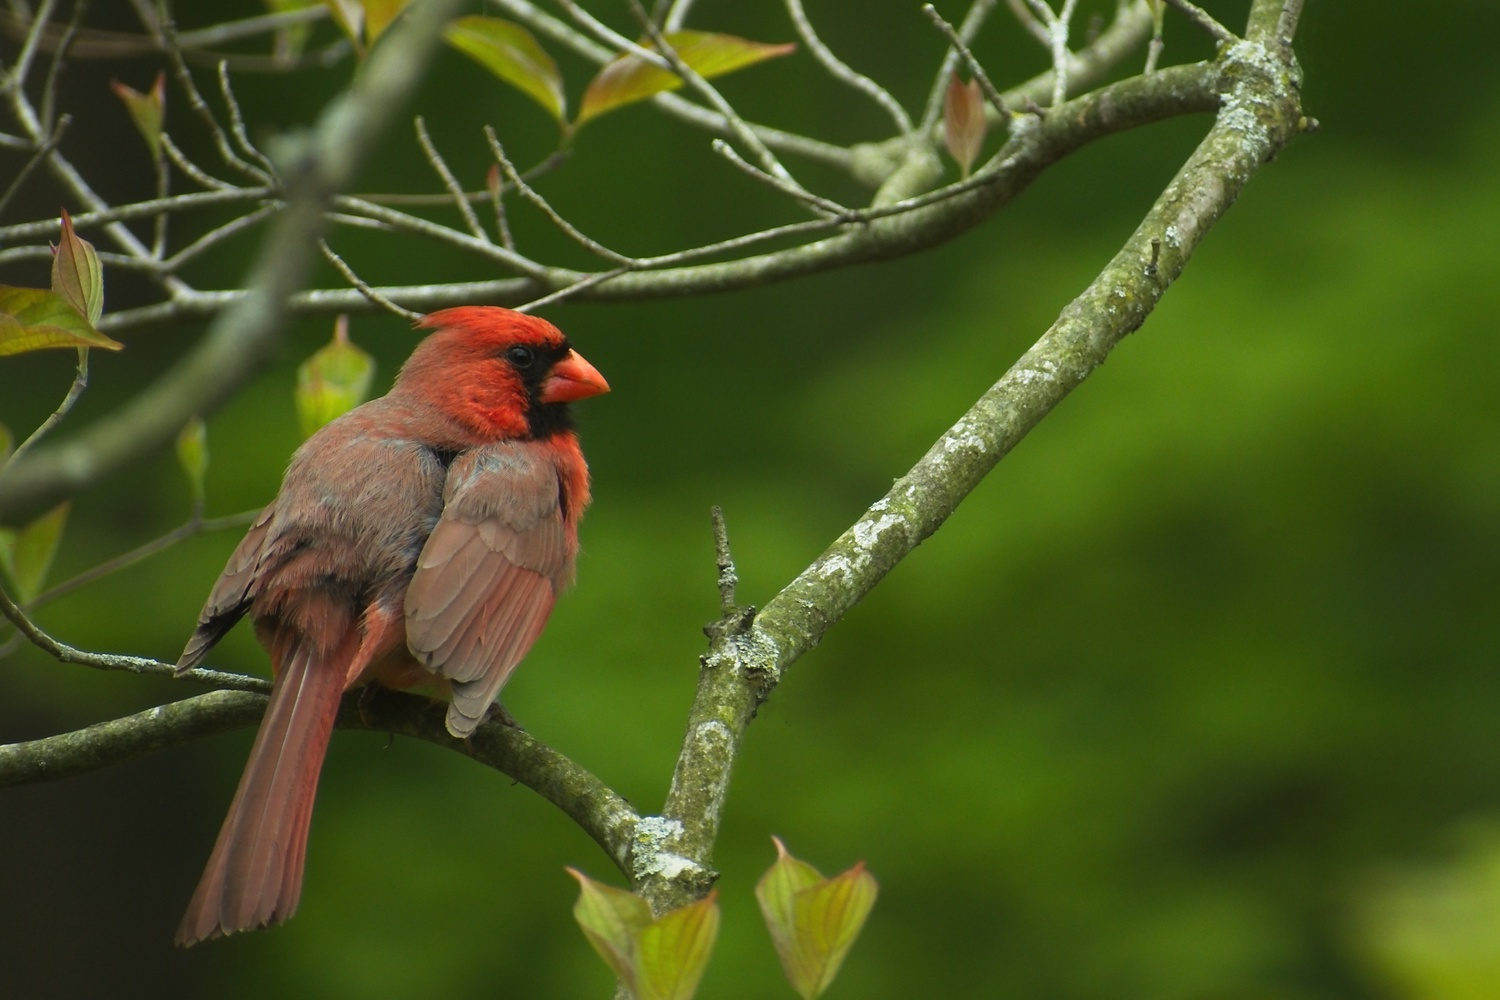 Red bird, Green leaves. by Matthew Lacy